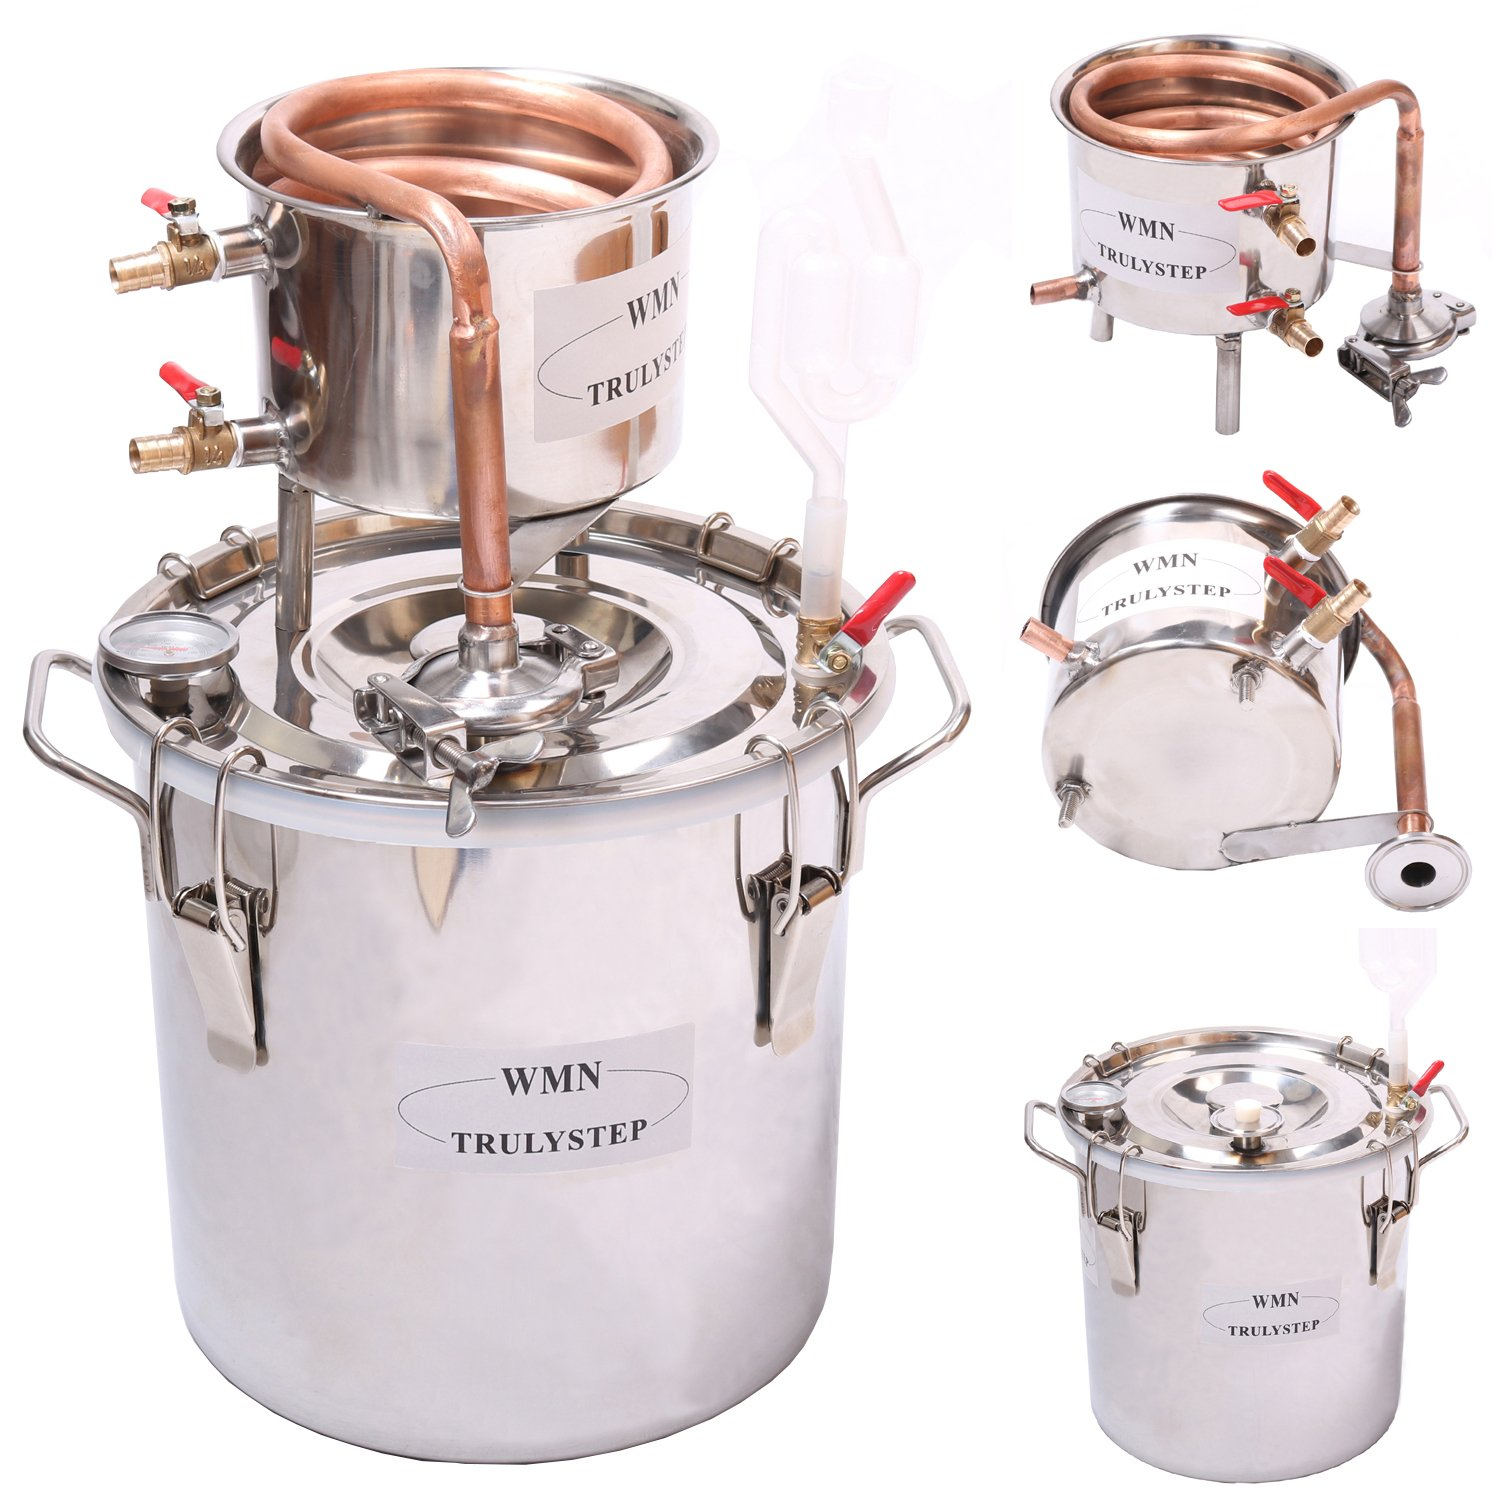 WMN_TRULYSTEP MSC03 Copper Alcohol Moonshine Ethanol Still Spirits Boiler Water Distiller, 20 Litres by WMN_TRULYSTEP